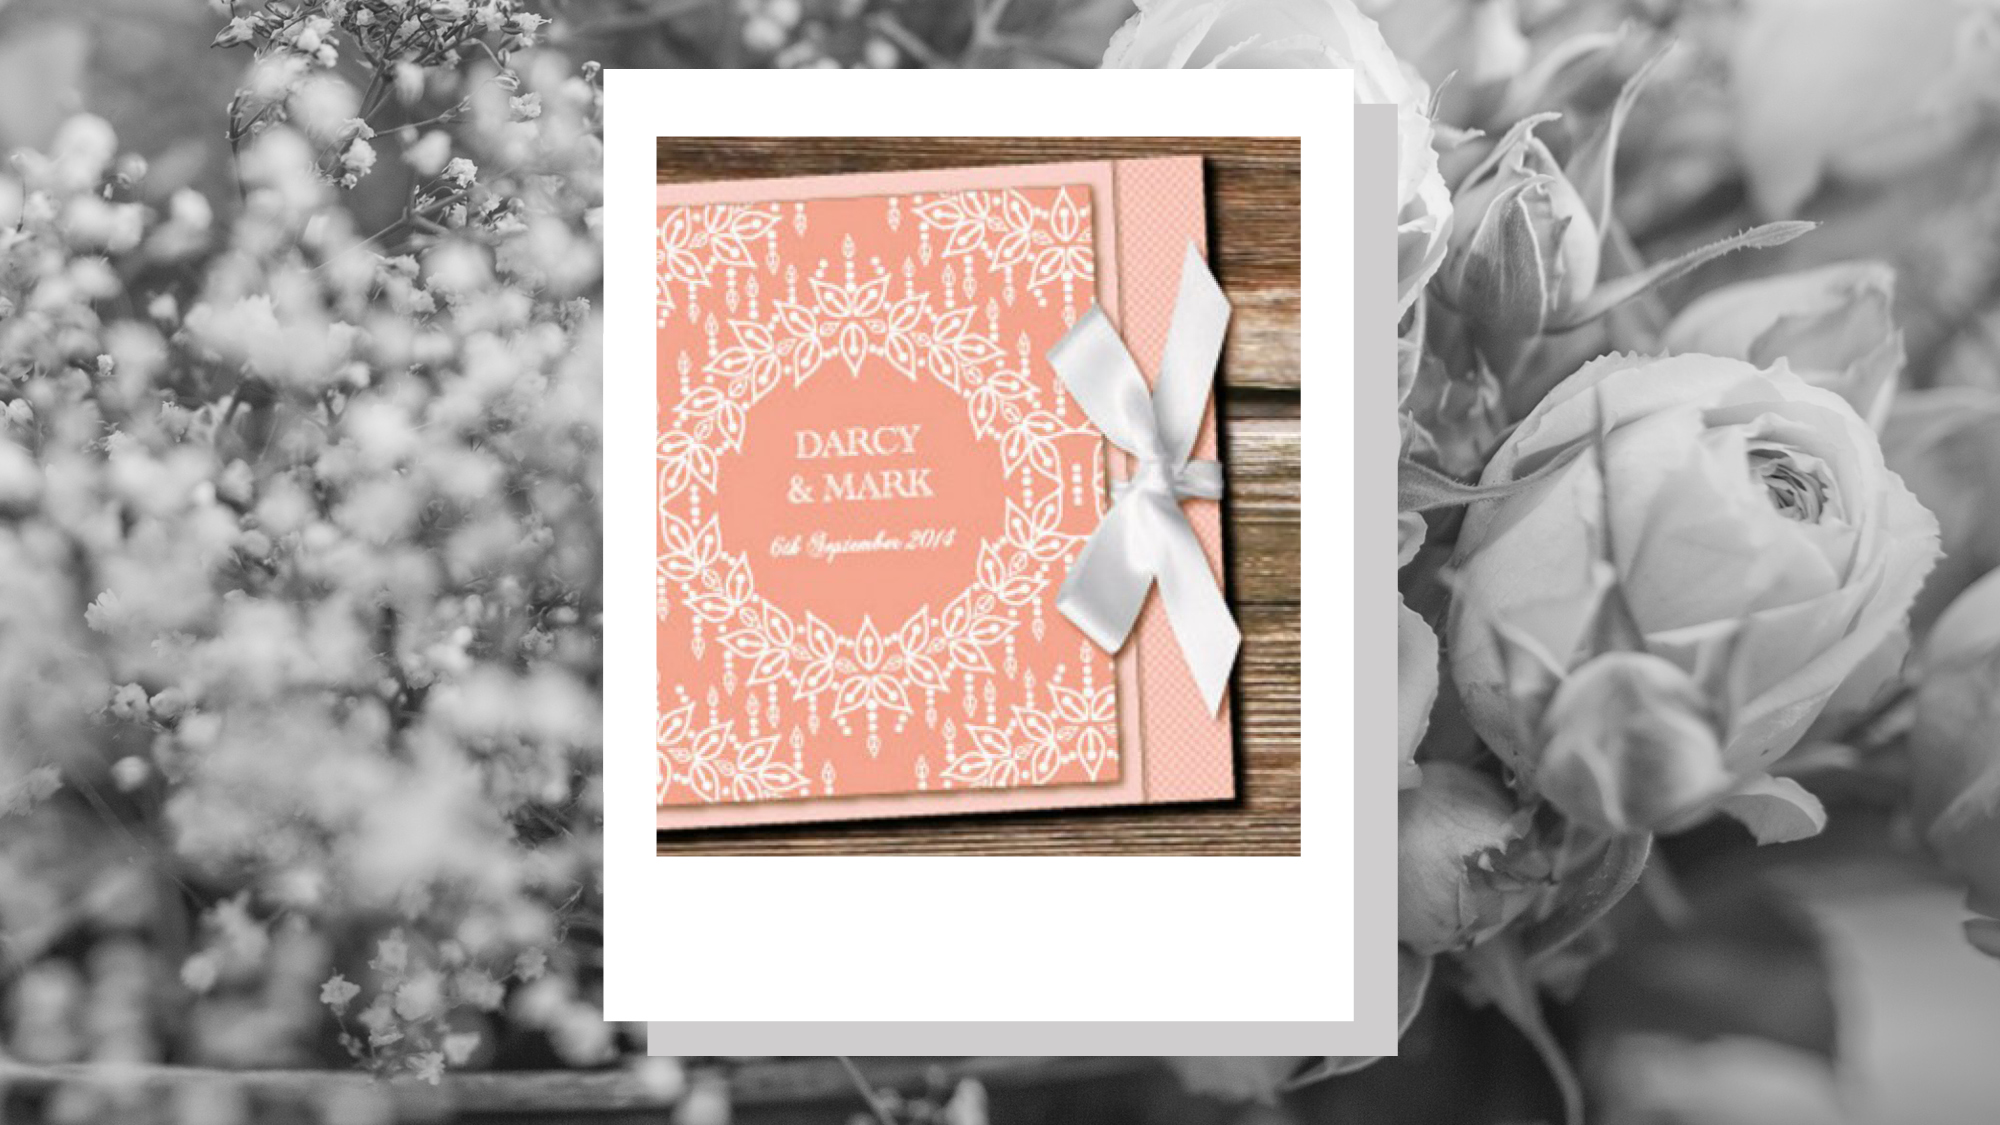 Best Place To Buy Wedding Invitations Online: Wedding Invitations: 15 Places For Beautiful And Unique Cards